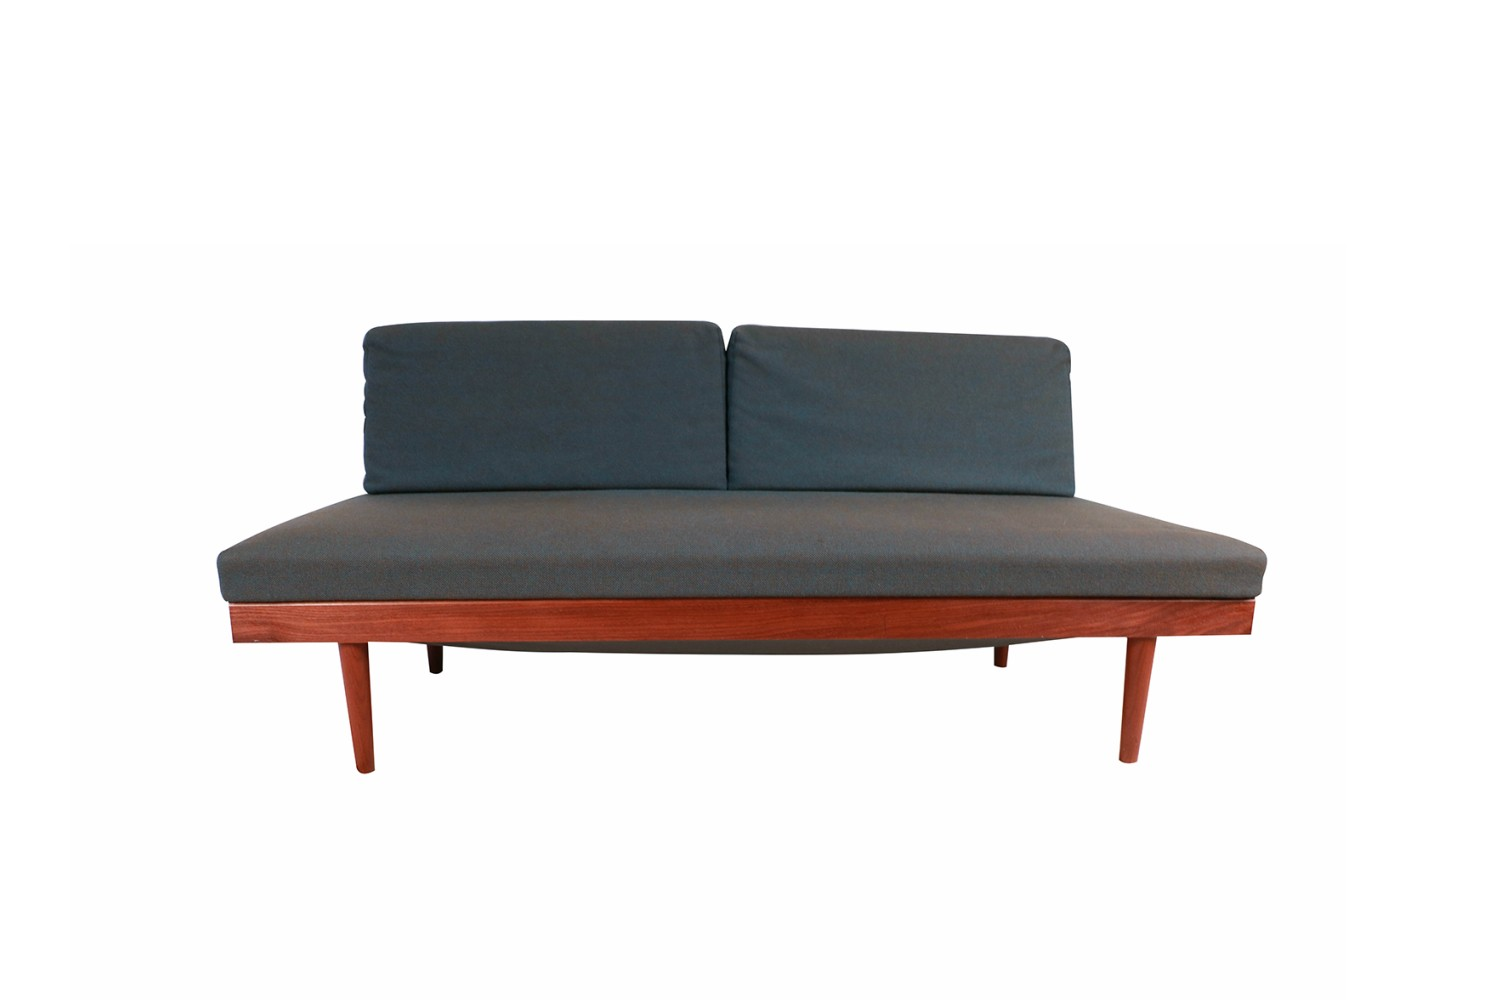 Norwegian Modern Teak Daybed Sofa Pull Out Tables Edvard